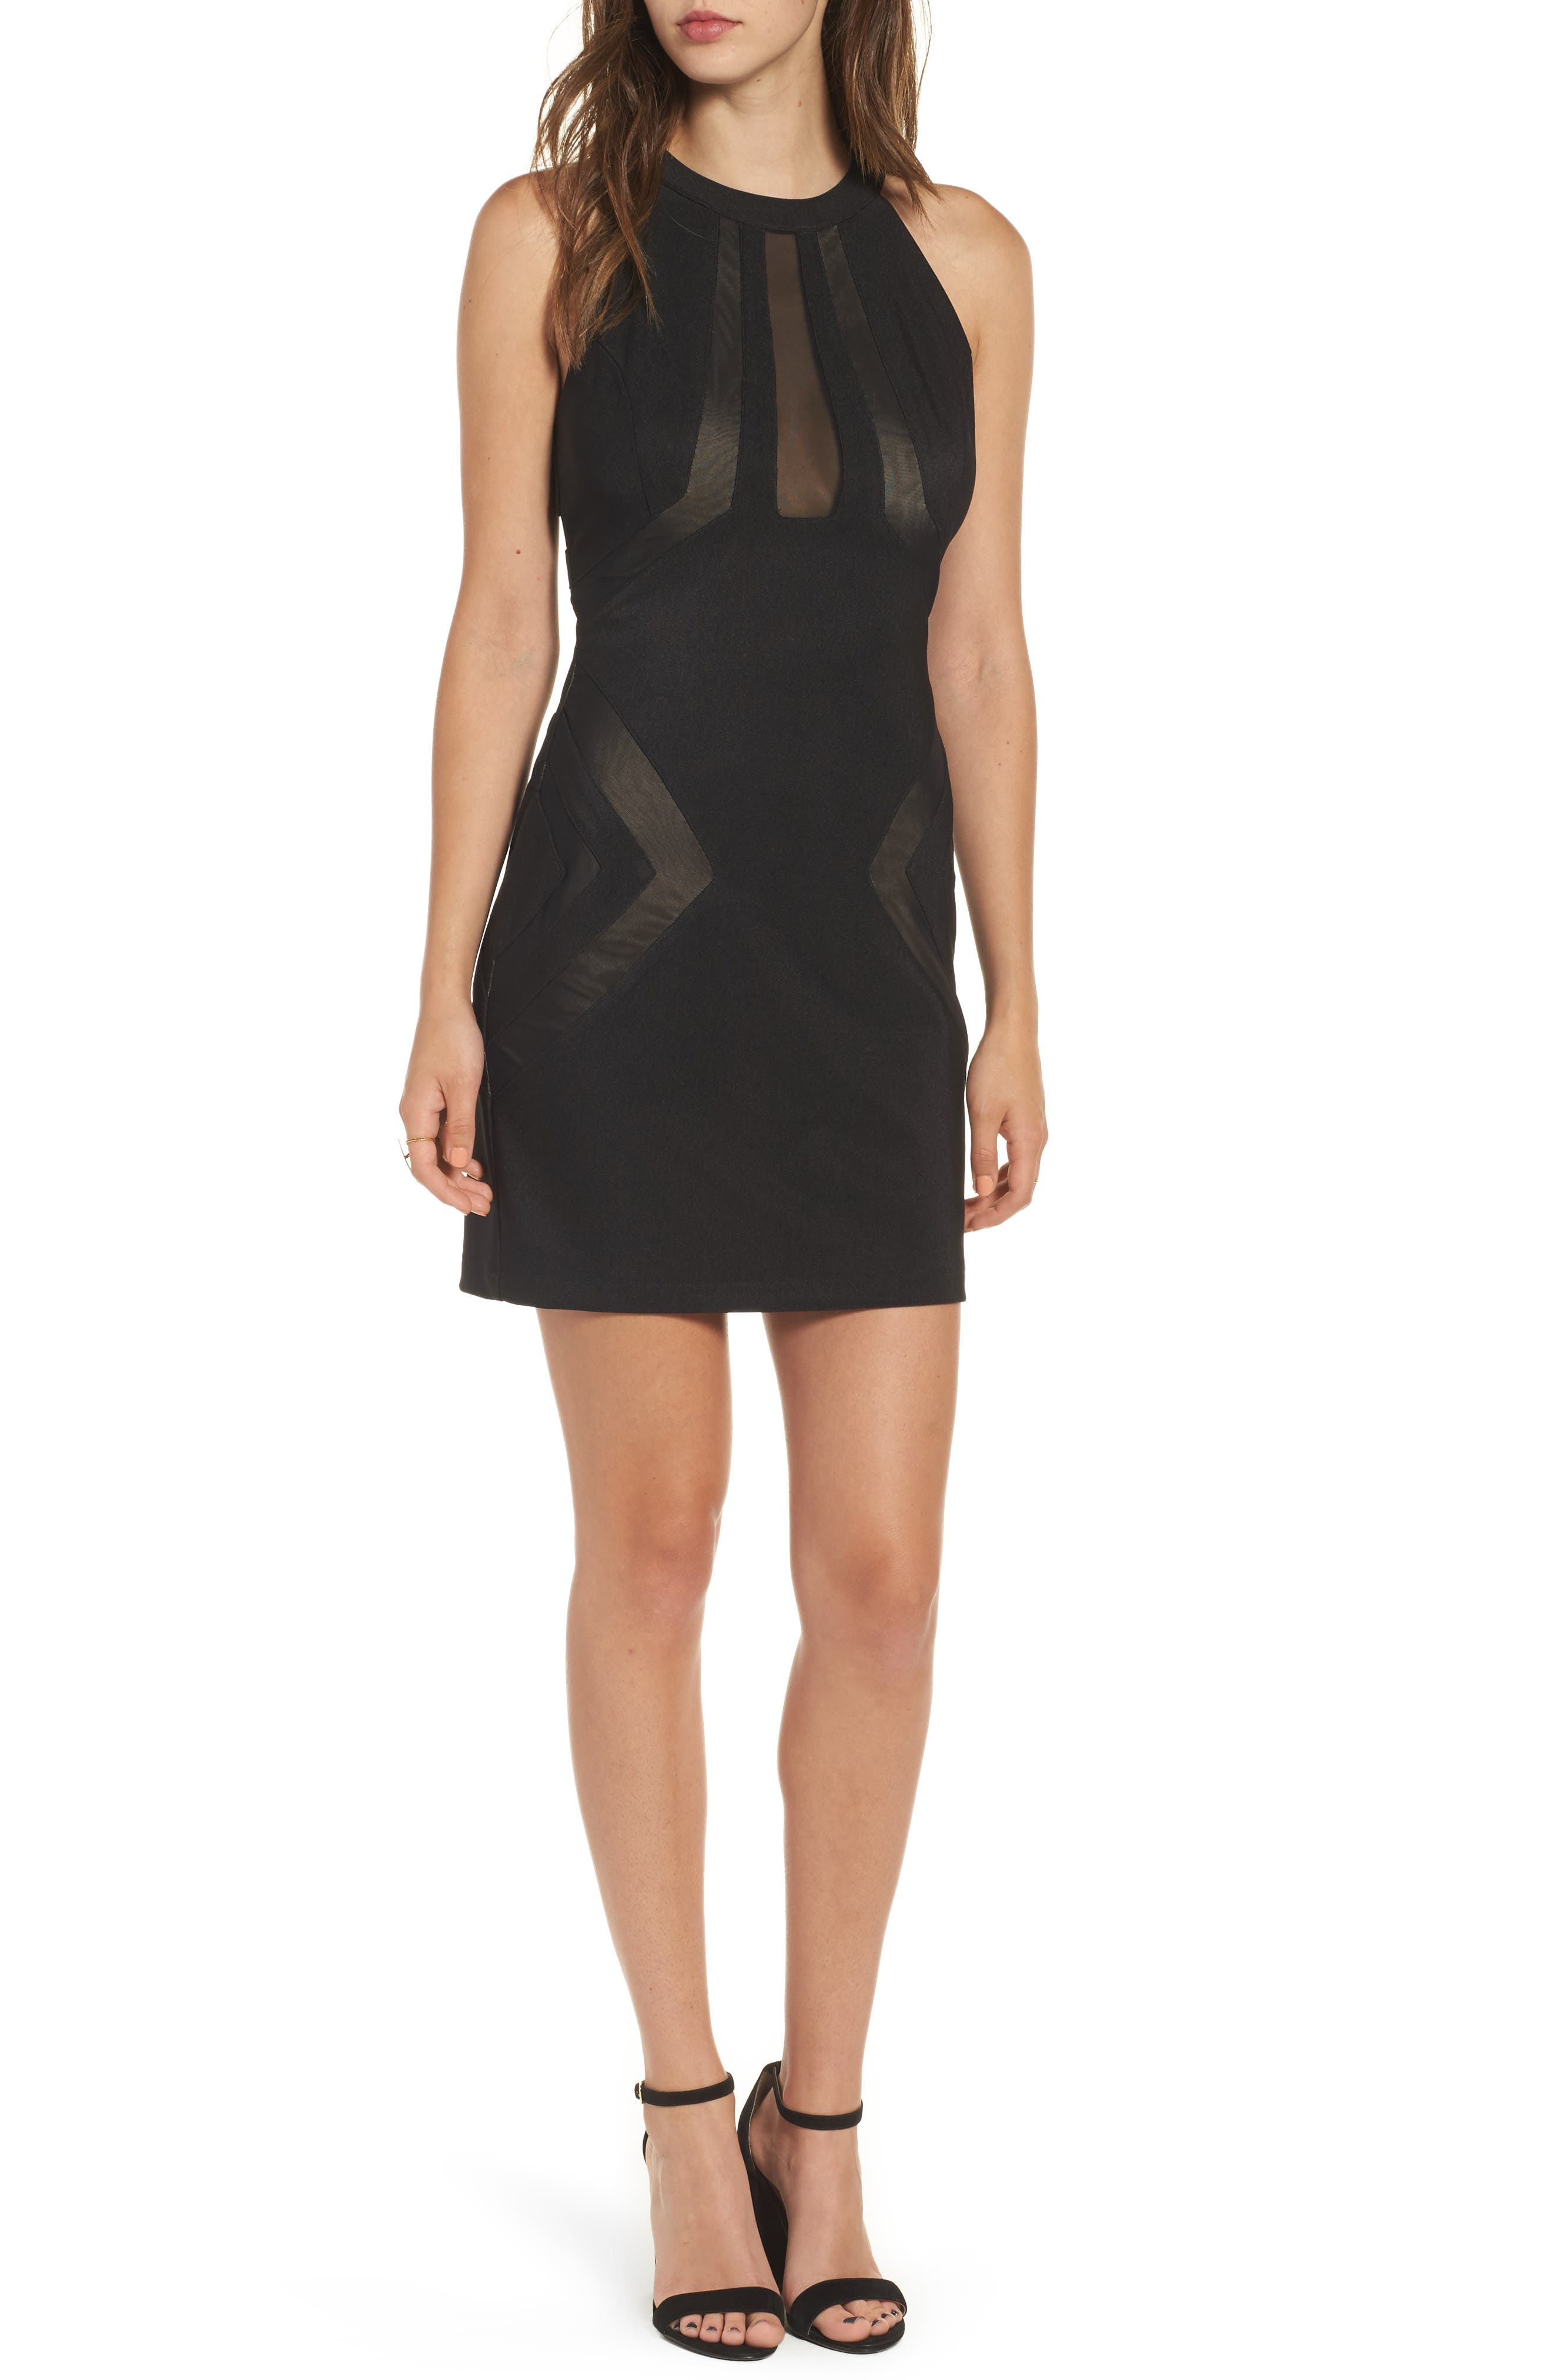 Main Image - Love Nickie Lew Mesh Inset Body Con Dress